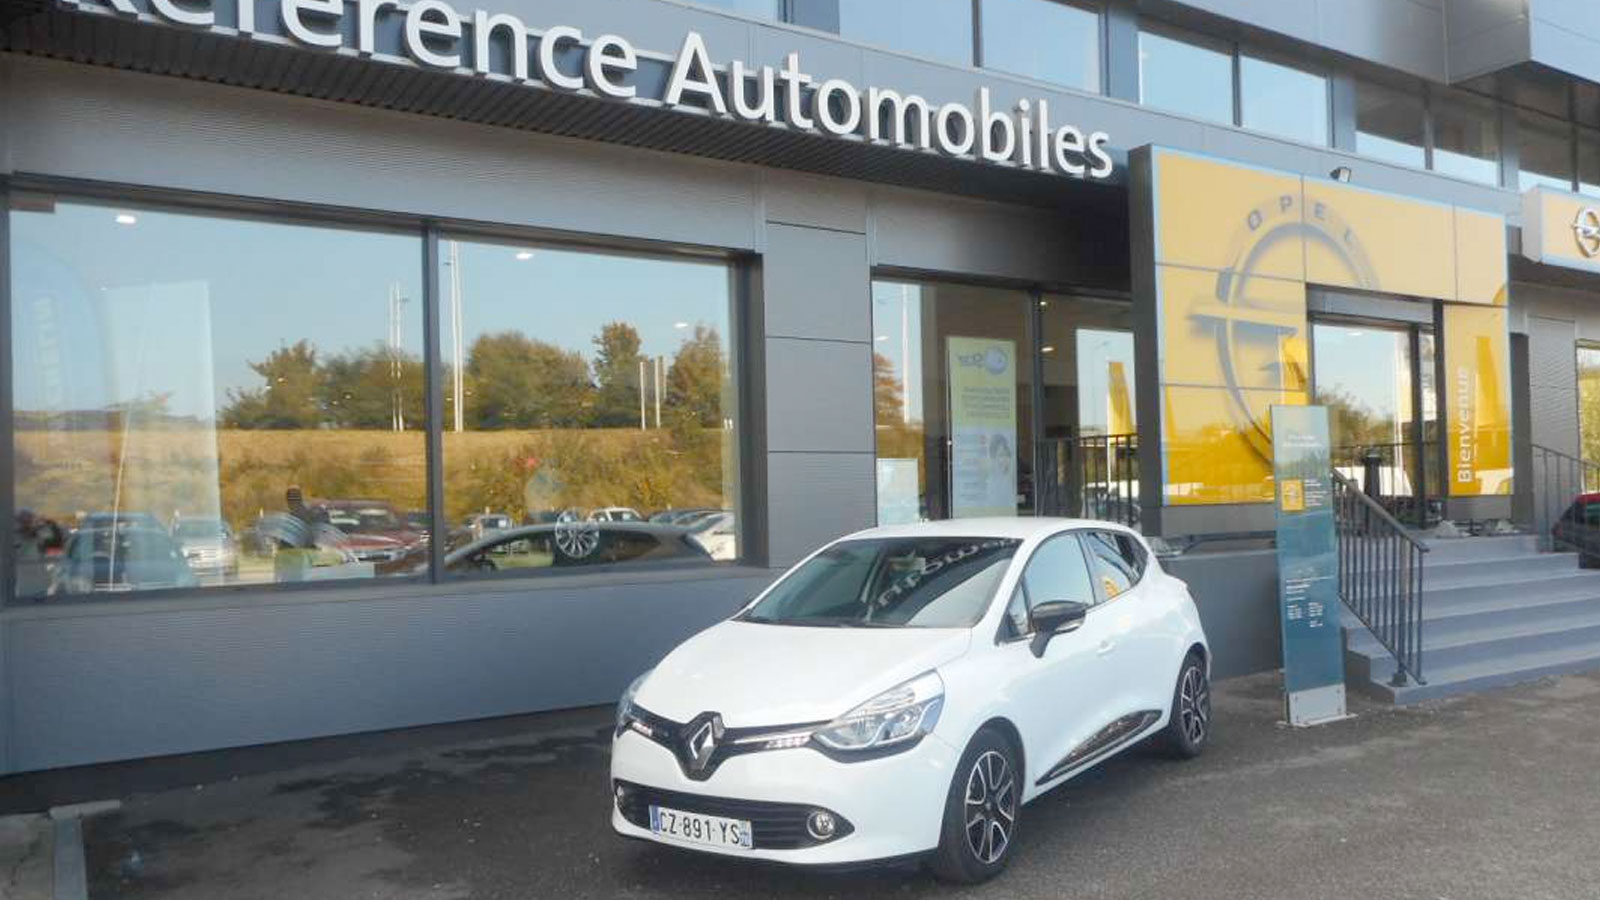 RENAULT CLIO 4 ENERGY INTENS 1.2 TCE 90CH 5 PORTES